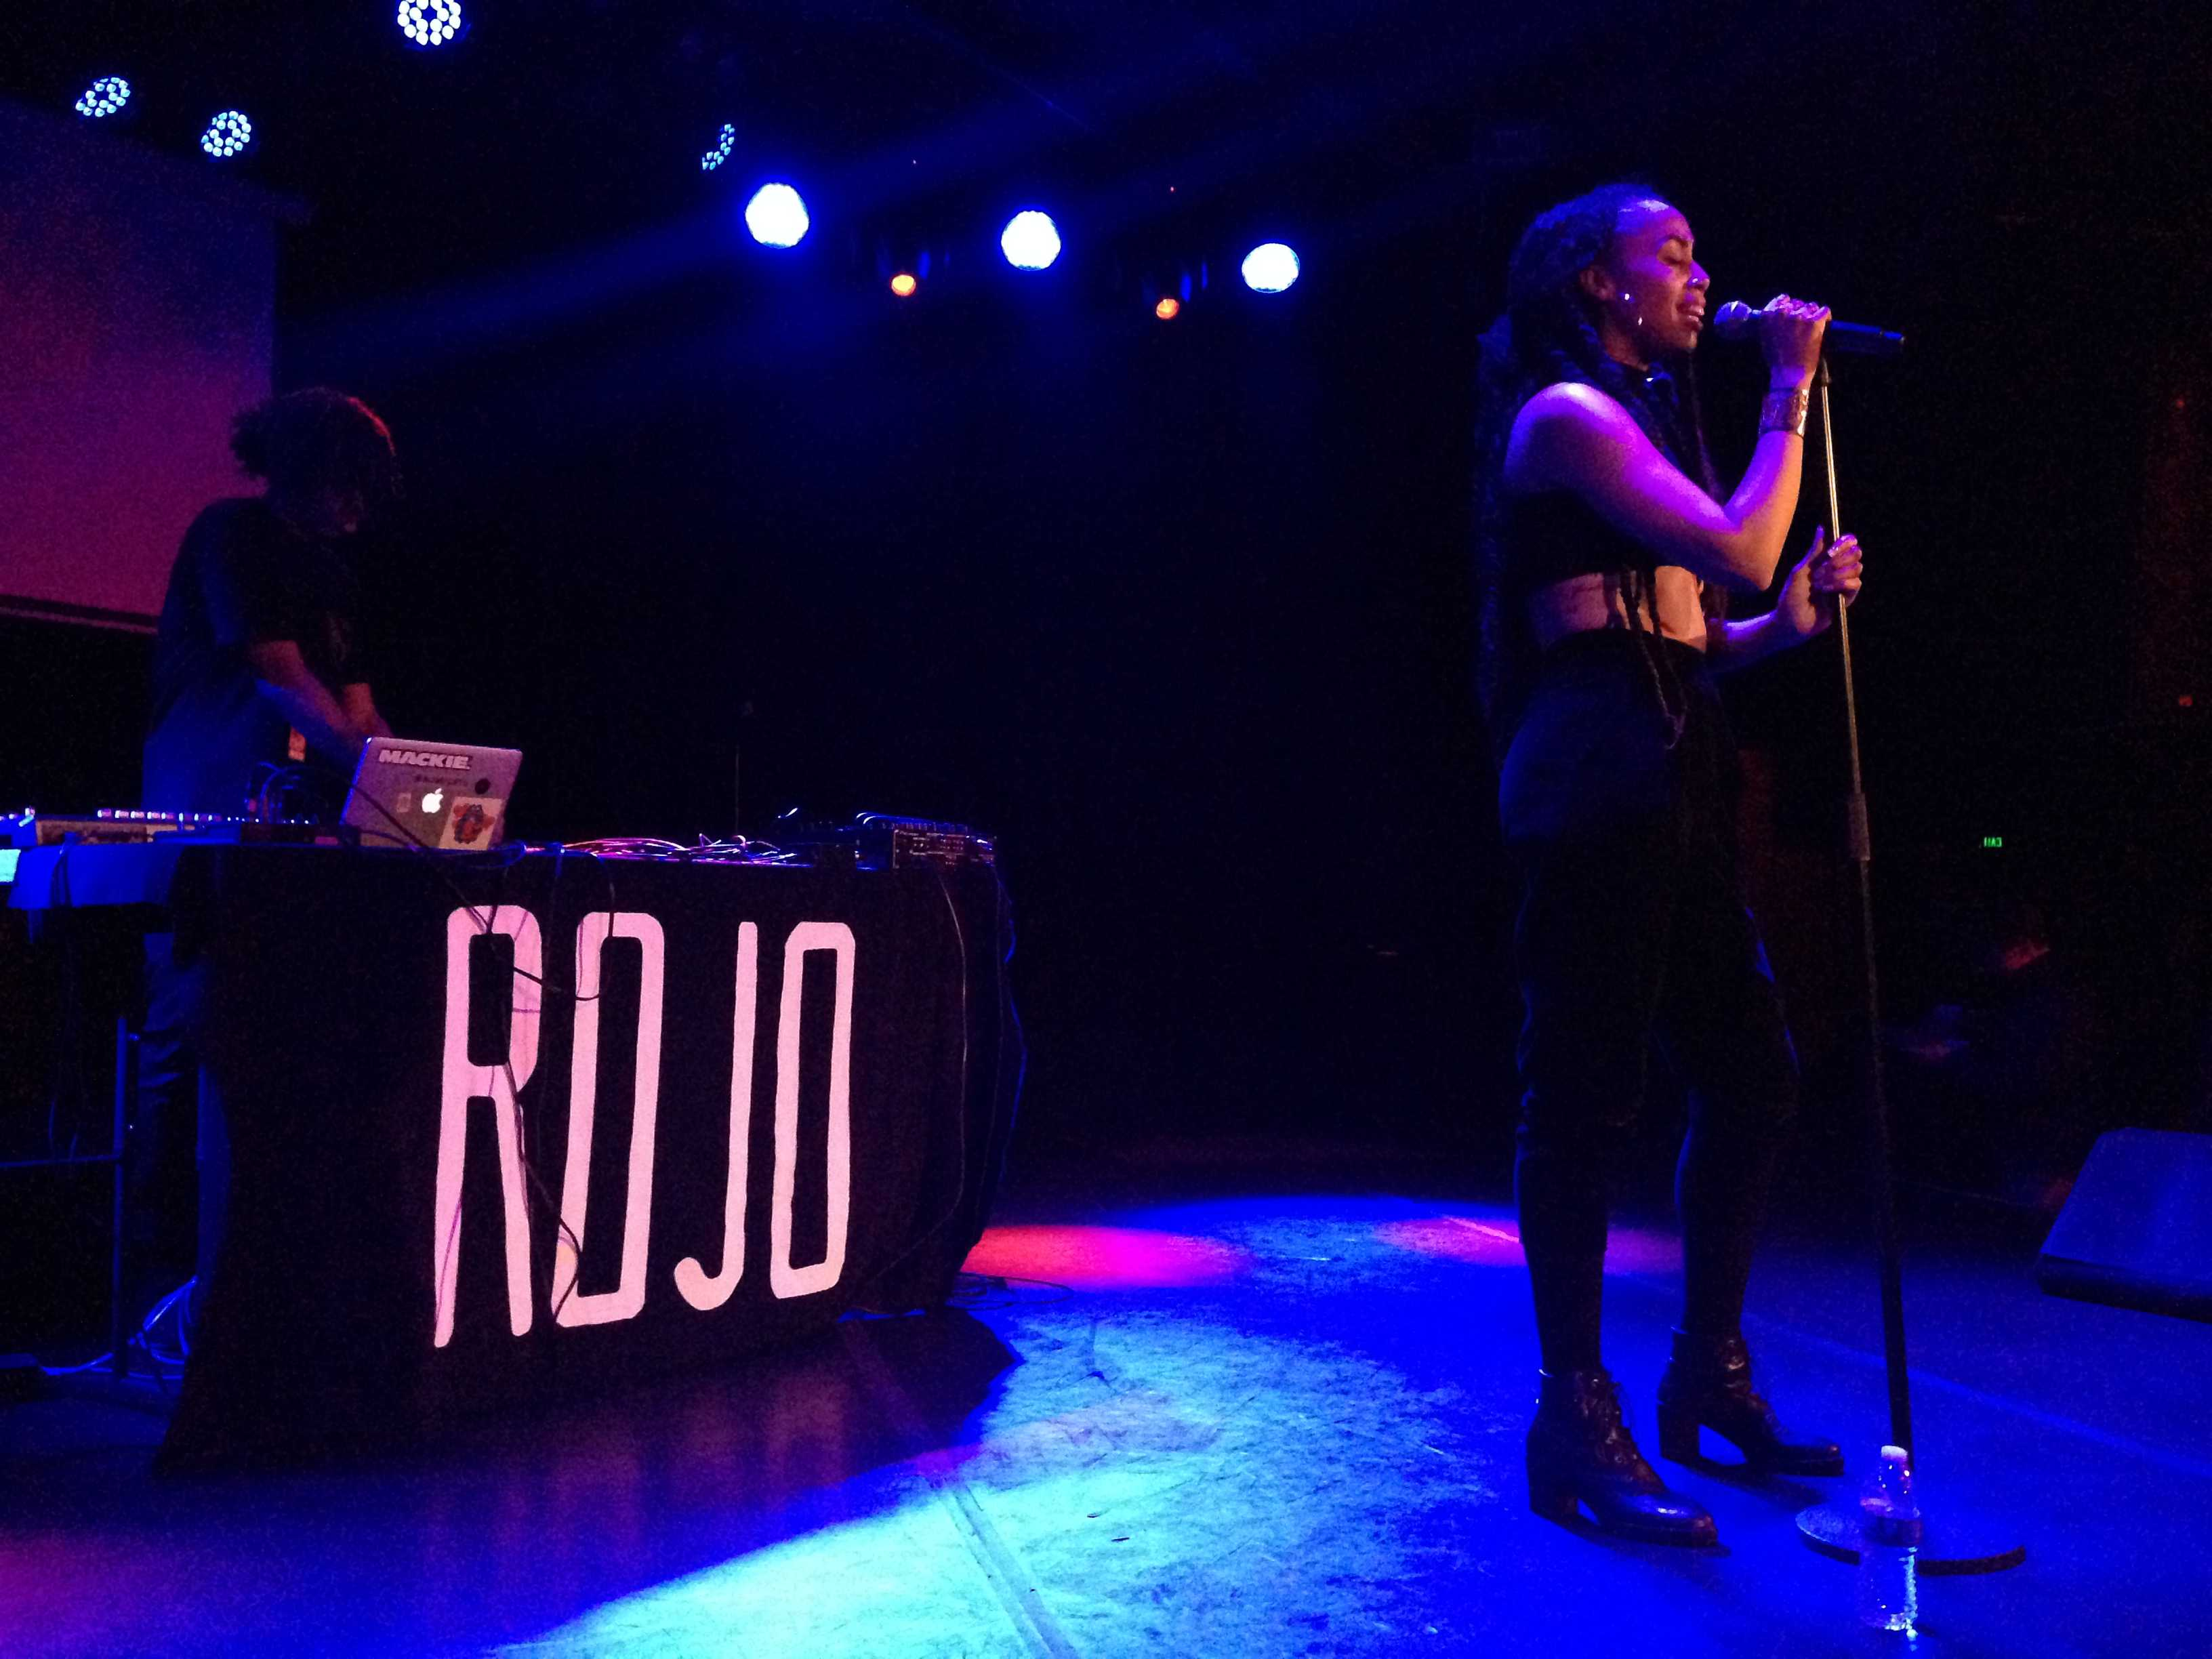 Rochelle+Jordan+opened+up+for+Sweater+Beats+at+the+Roxy+Saturday+night+as+her+eloquent+and+smooth+R%26B+tunes+pumped+the+crowd+up+for+the+main+act.+Photo+credit%3A+Vincent+Nguyen